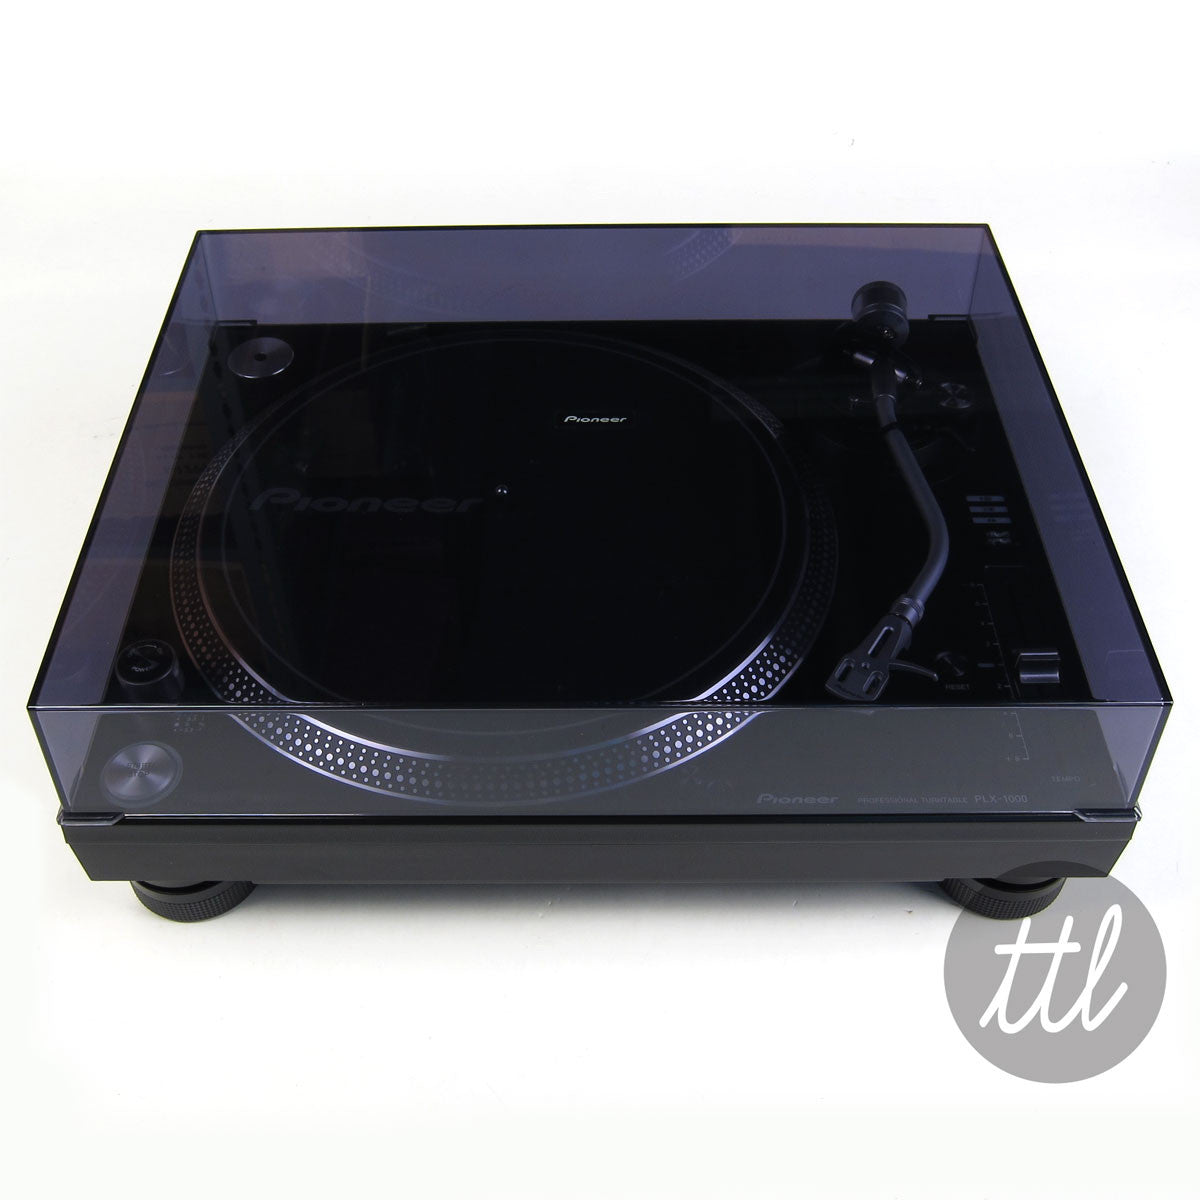 Pioneer: PLX-1000 Professional Turntable